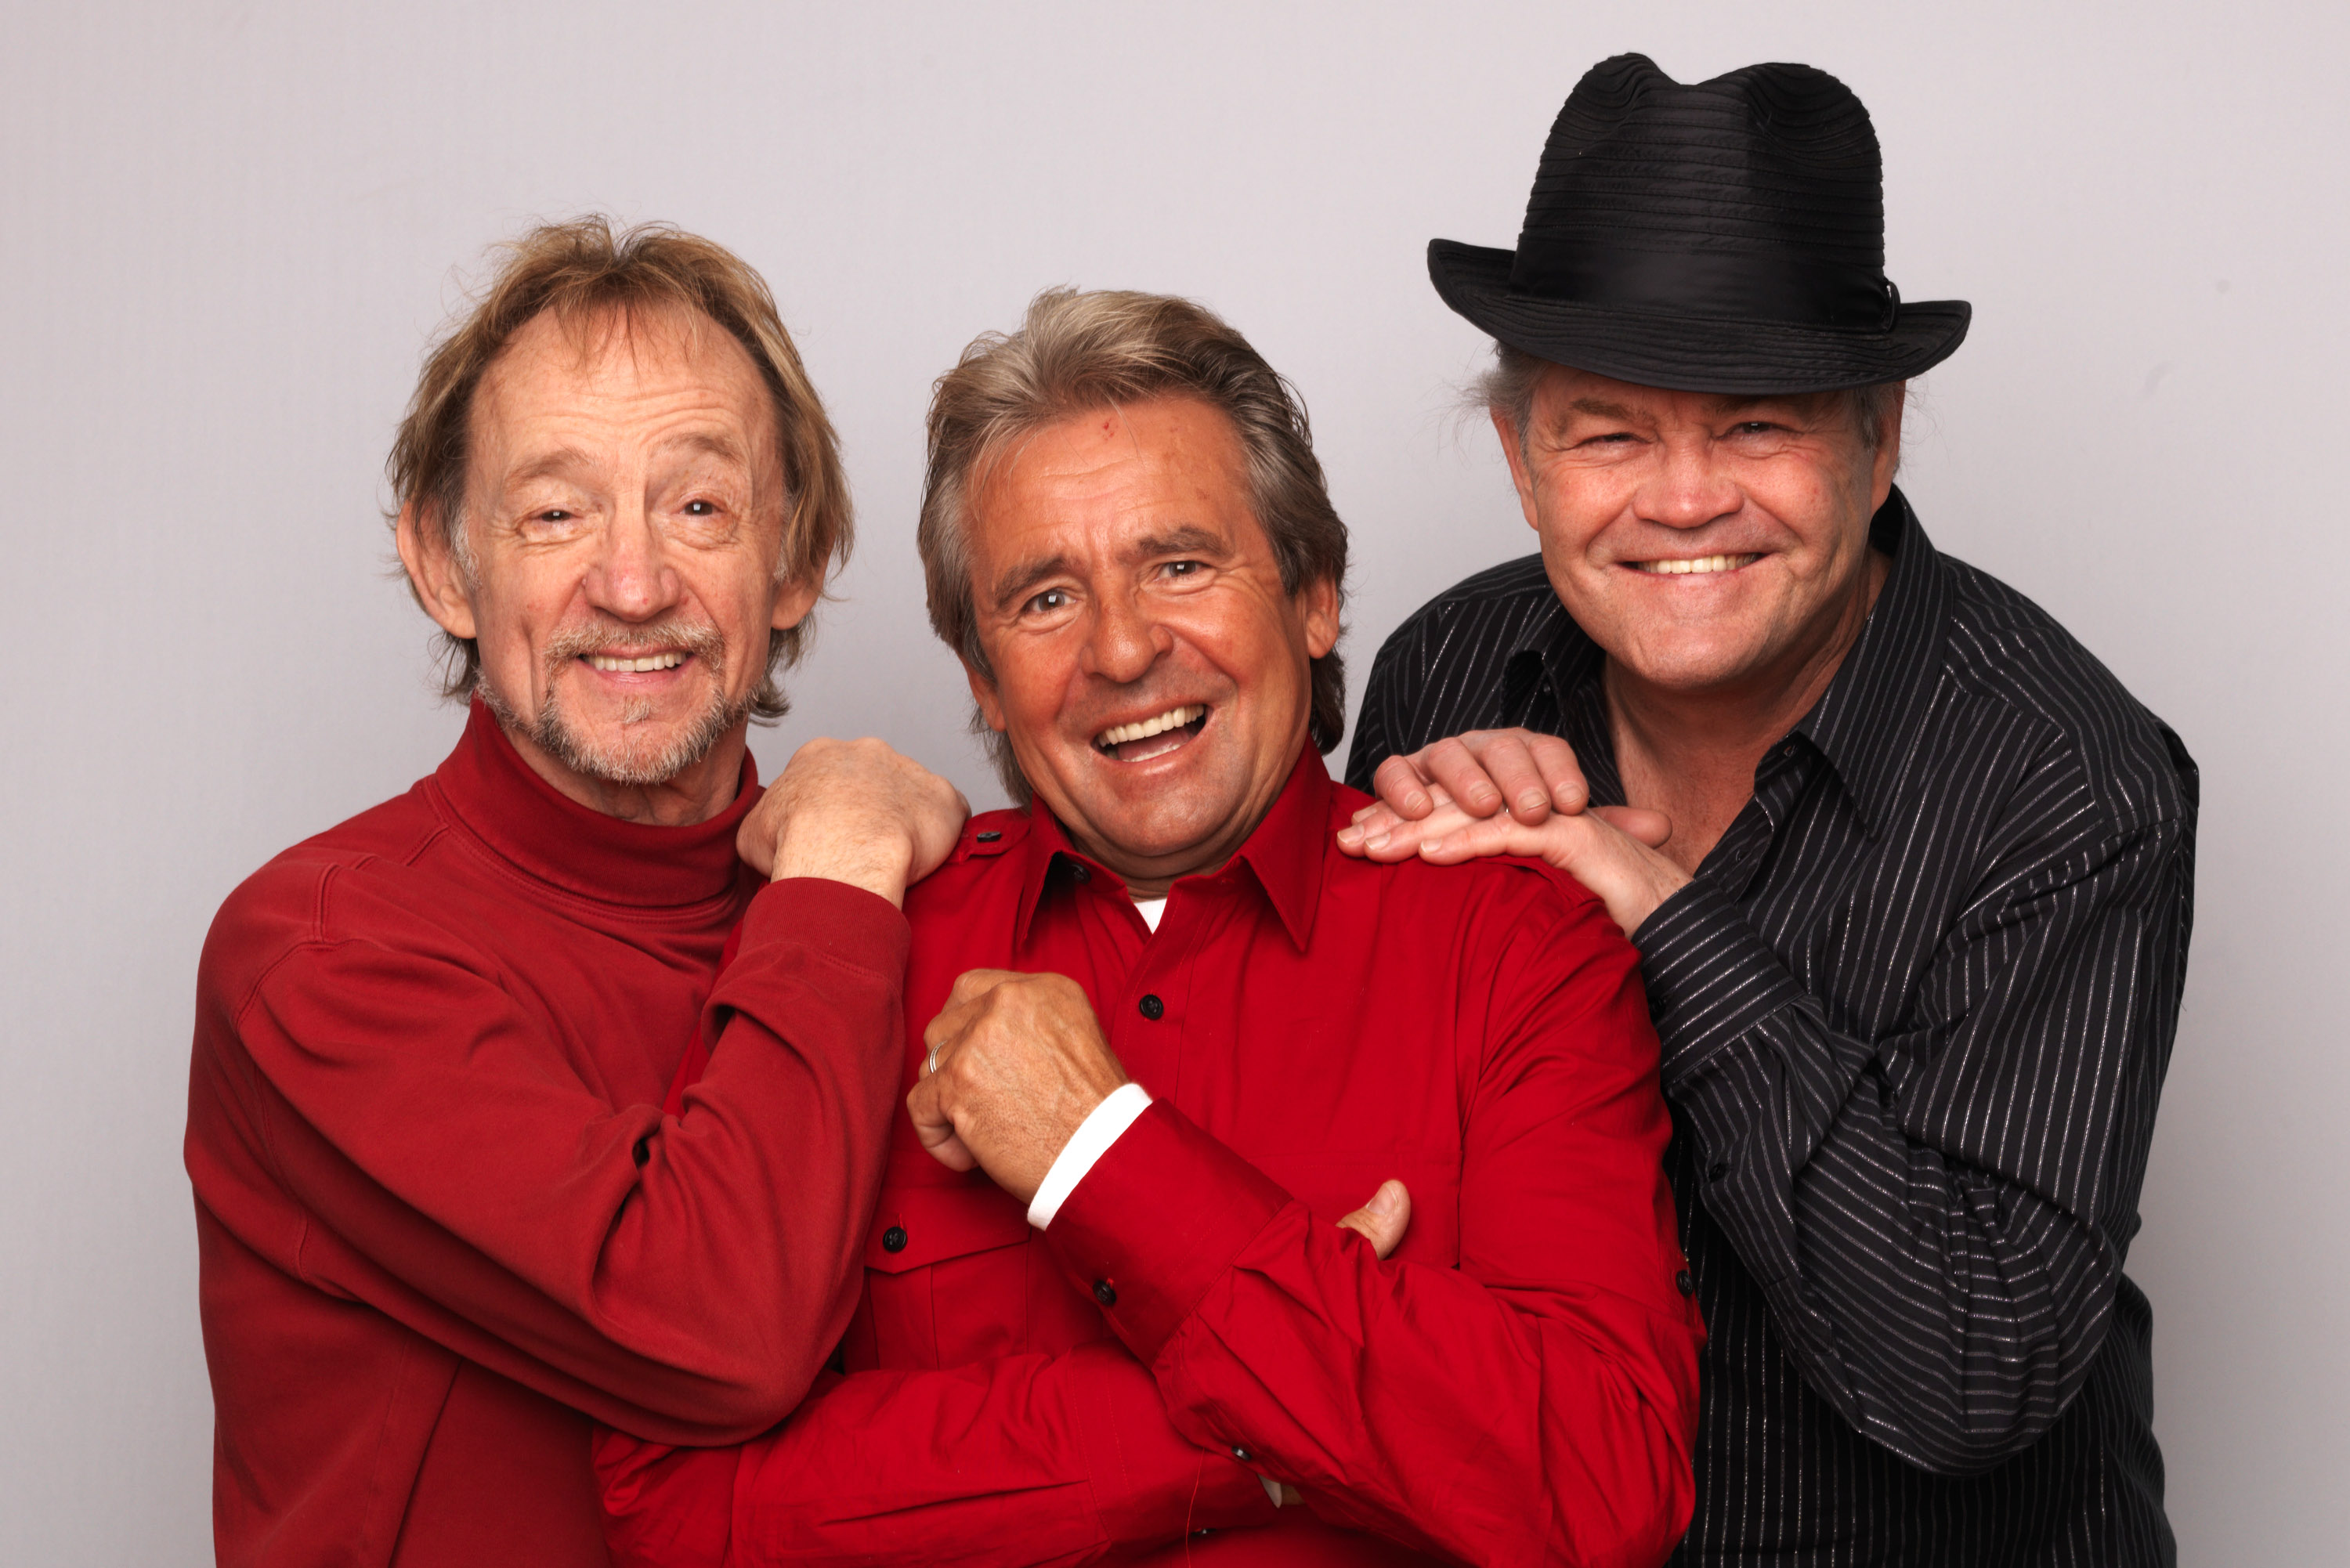 Davy Jones reunited with Peter Tork and Micky Dolenz in 2011 to clebrate the band's 45th anniversary tour.